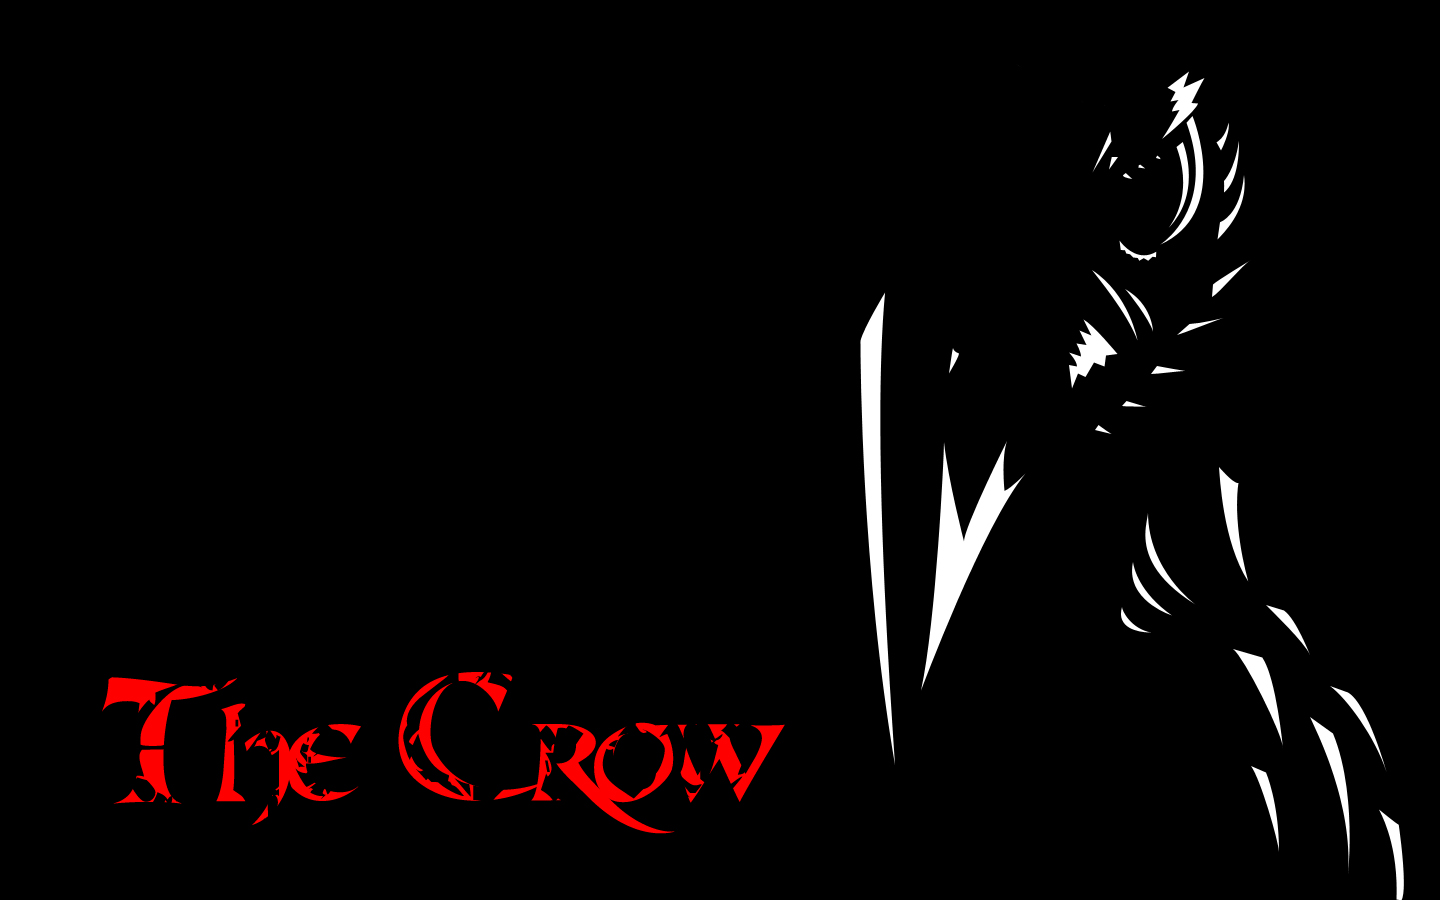 crow hd movie wallpapers - photo #15